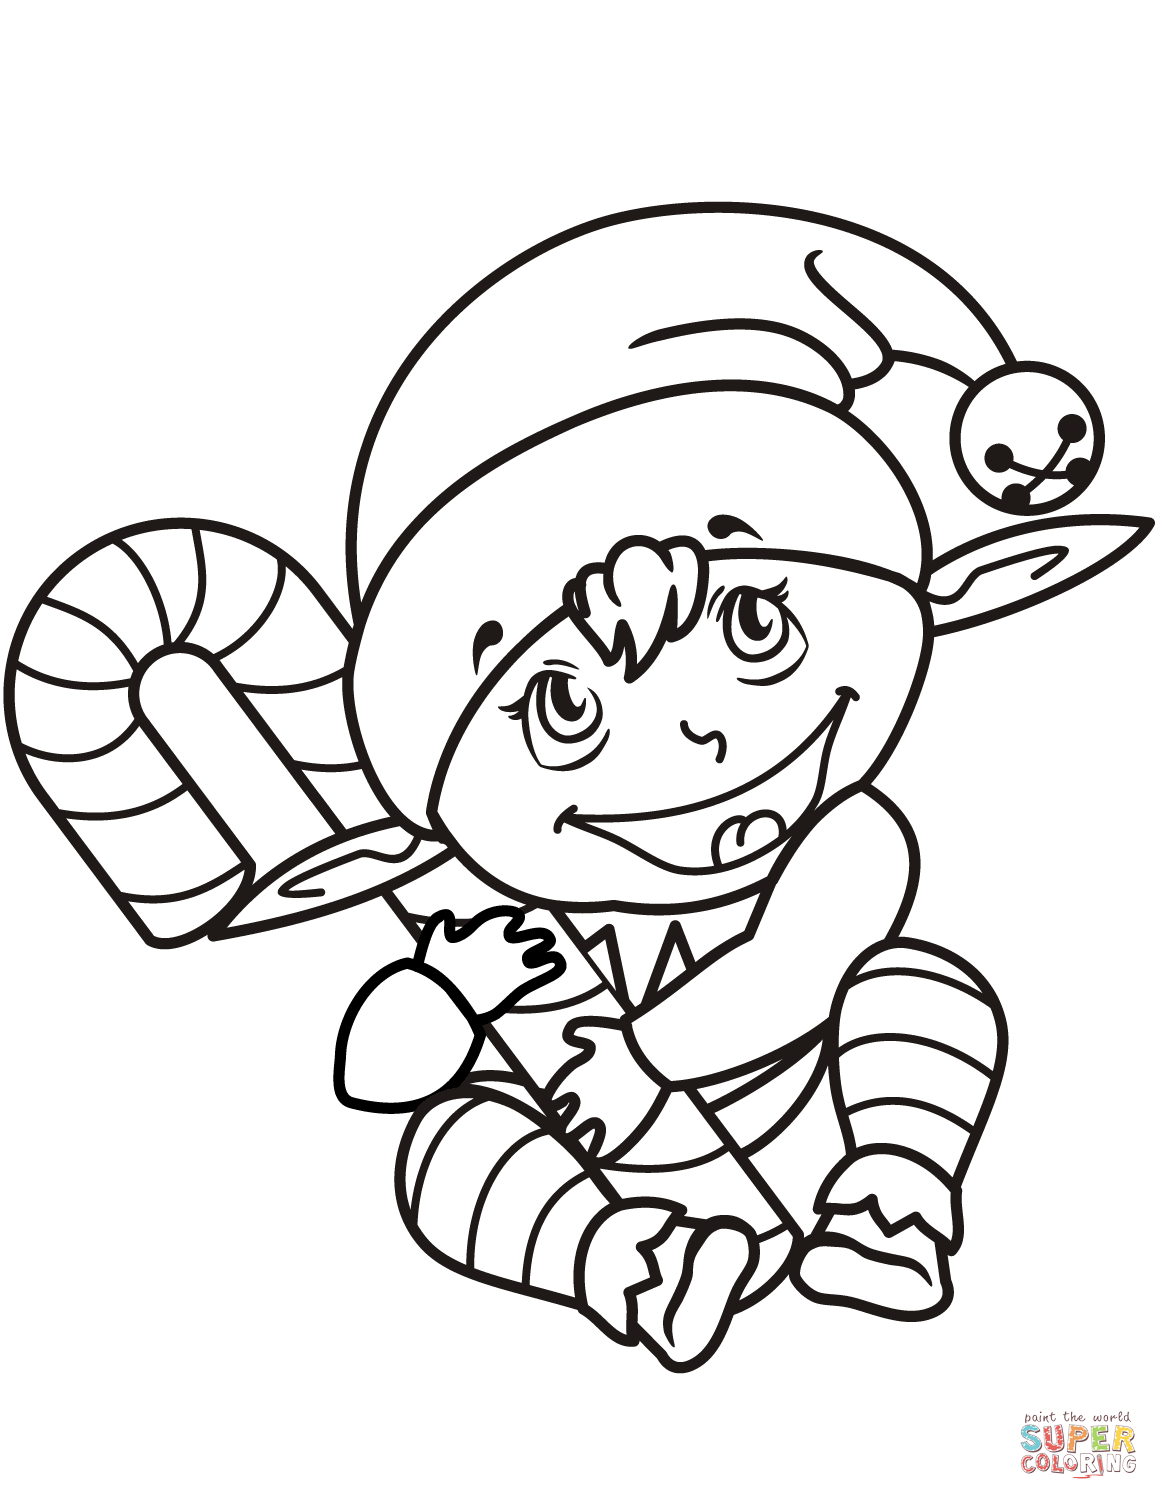 1159x1500 Innovative Ideas Candy Cane Coloring Pages Cute Christmas Elf